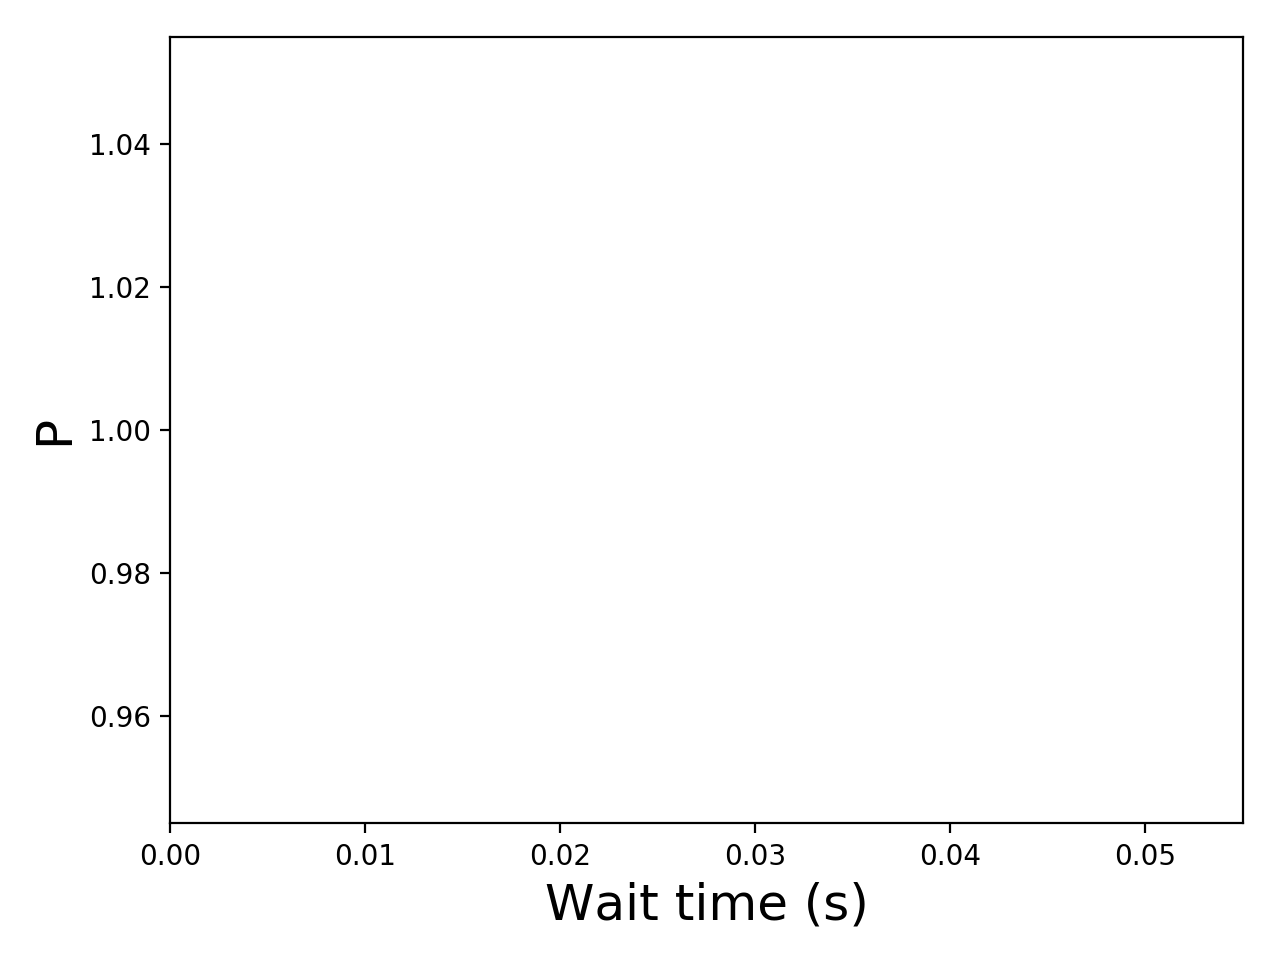 Task wait time CDF graph for the askalon-new_ee36 trace.